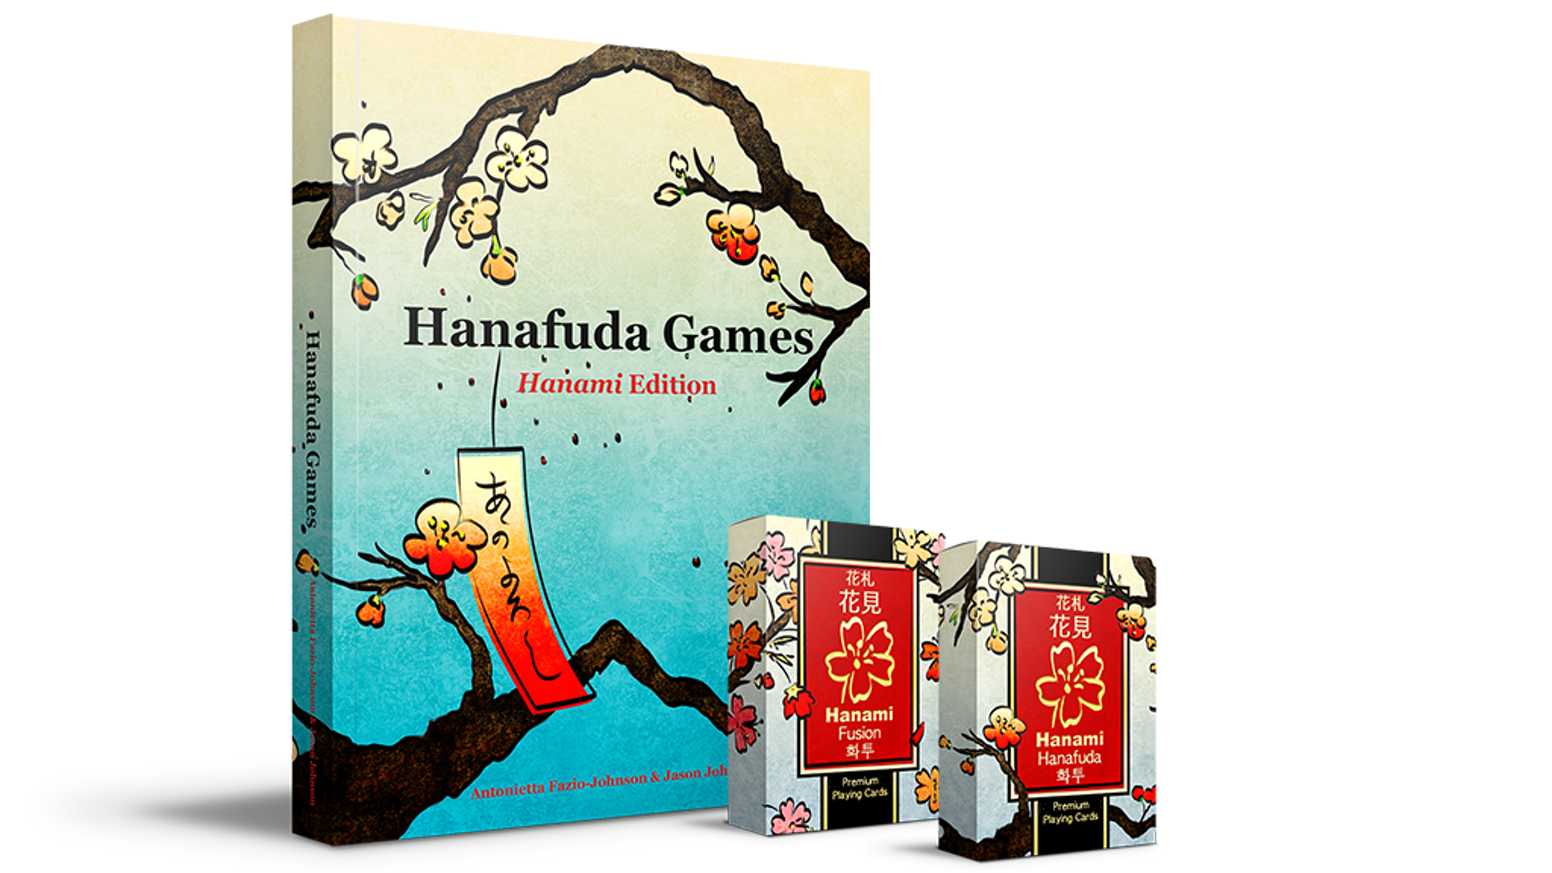 54 uniquely illustrated playing cards. Printed by LPCC. In-depth 250 page 32-game hanafuda rulebook.